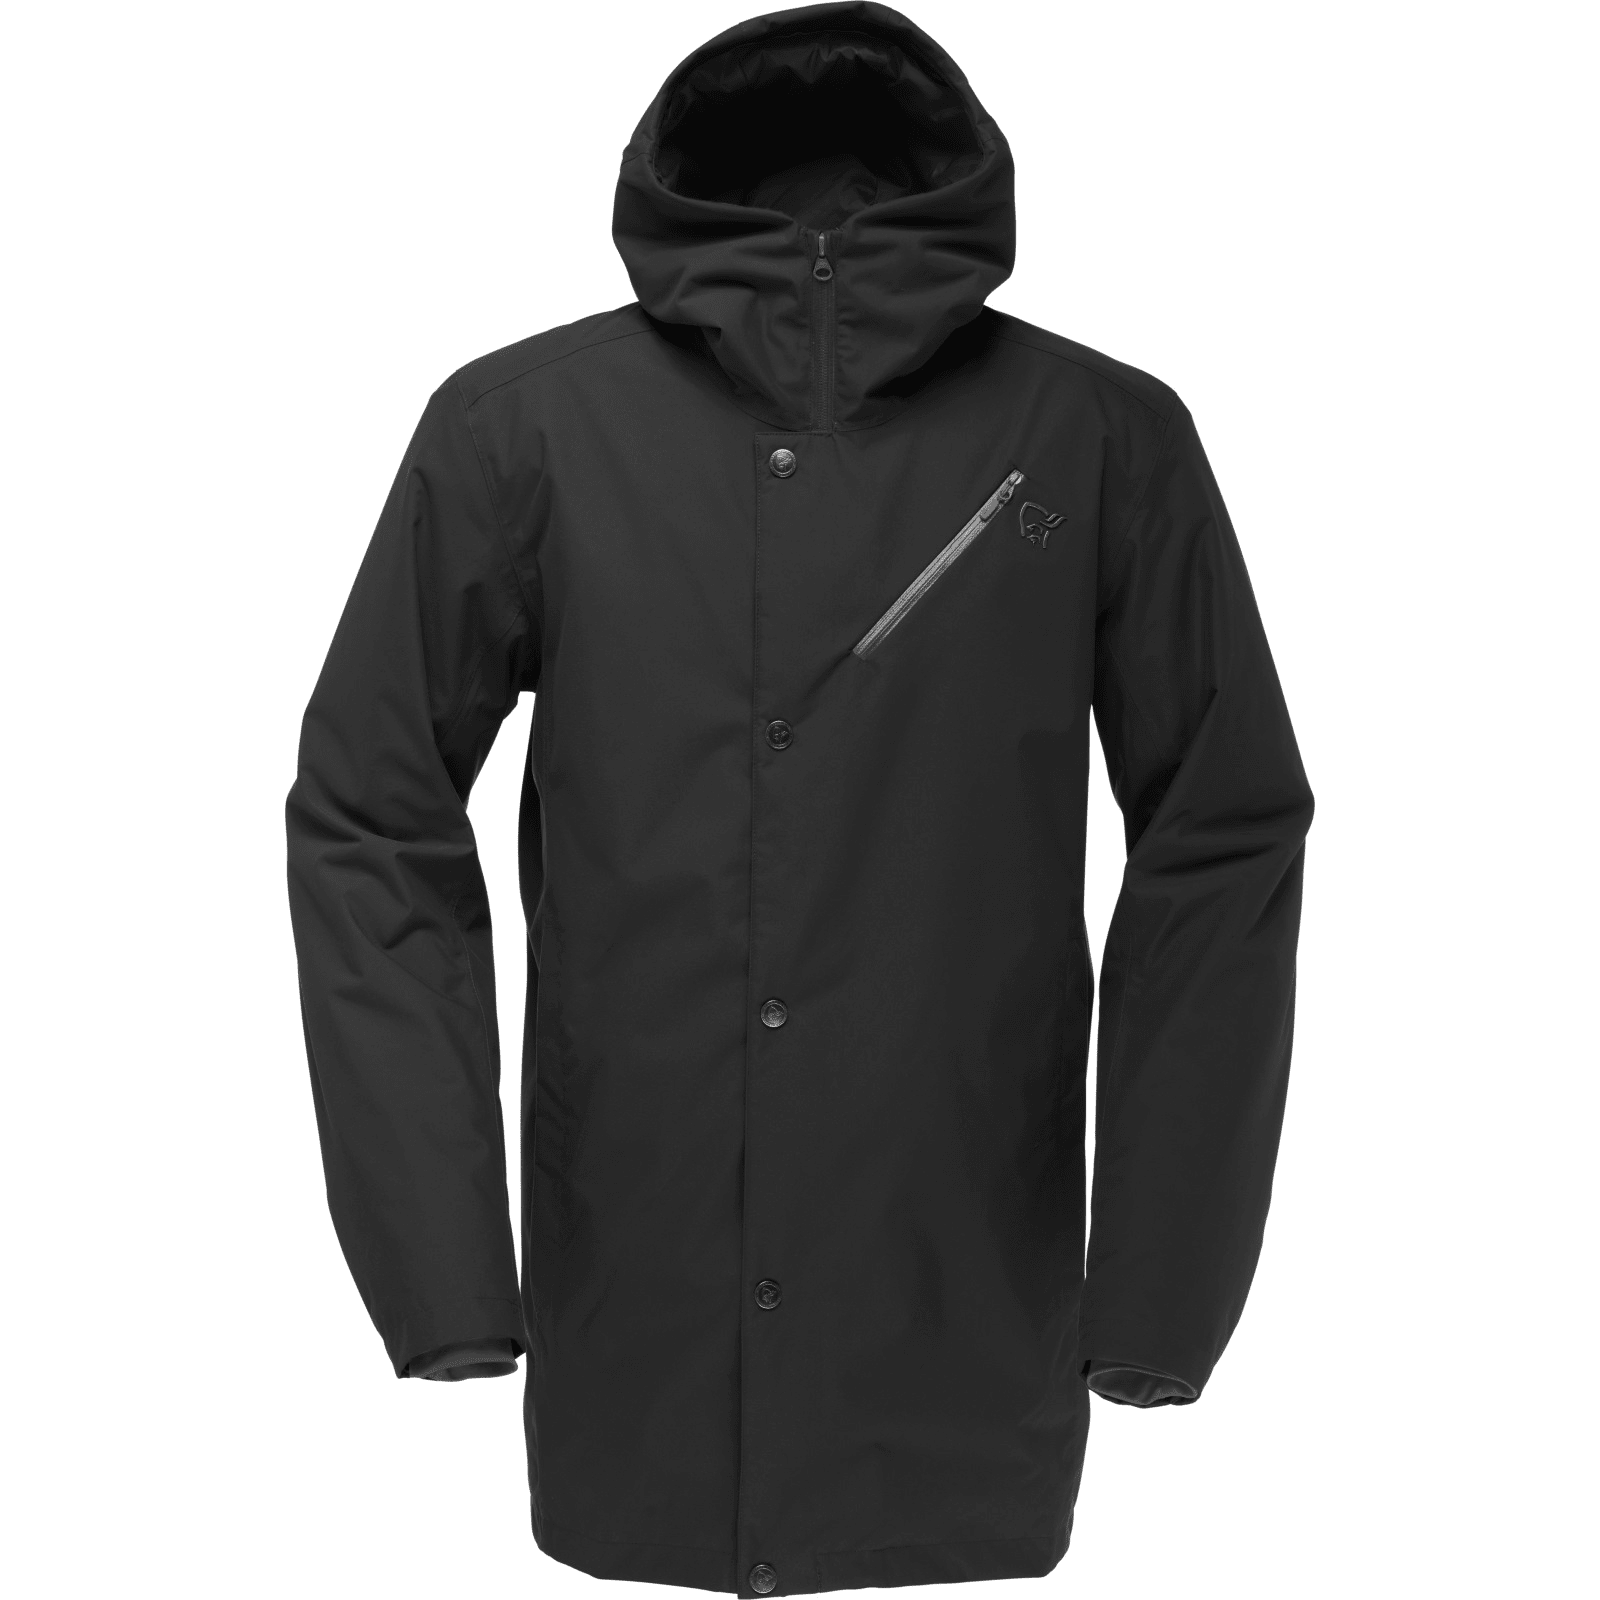 2396b0c7ada Buy Norrøna  29 Dri2 Primaloft Coat (m) from Outnorth